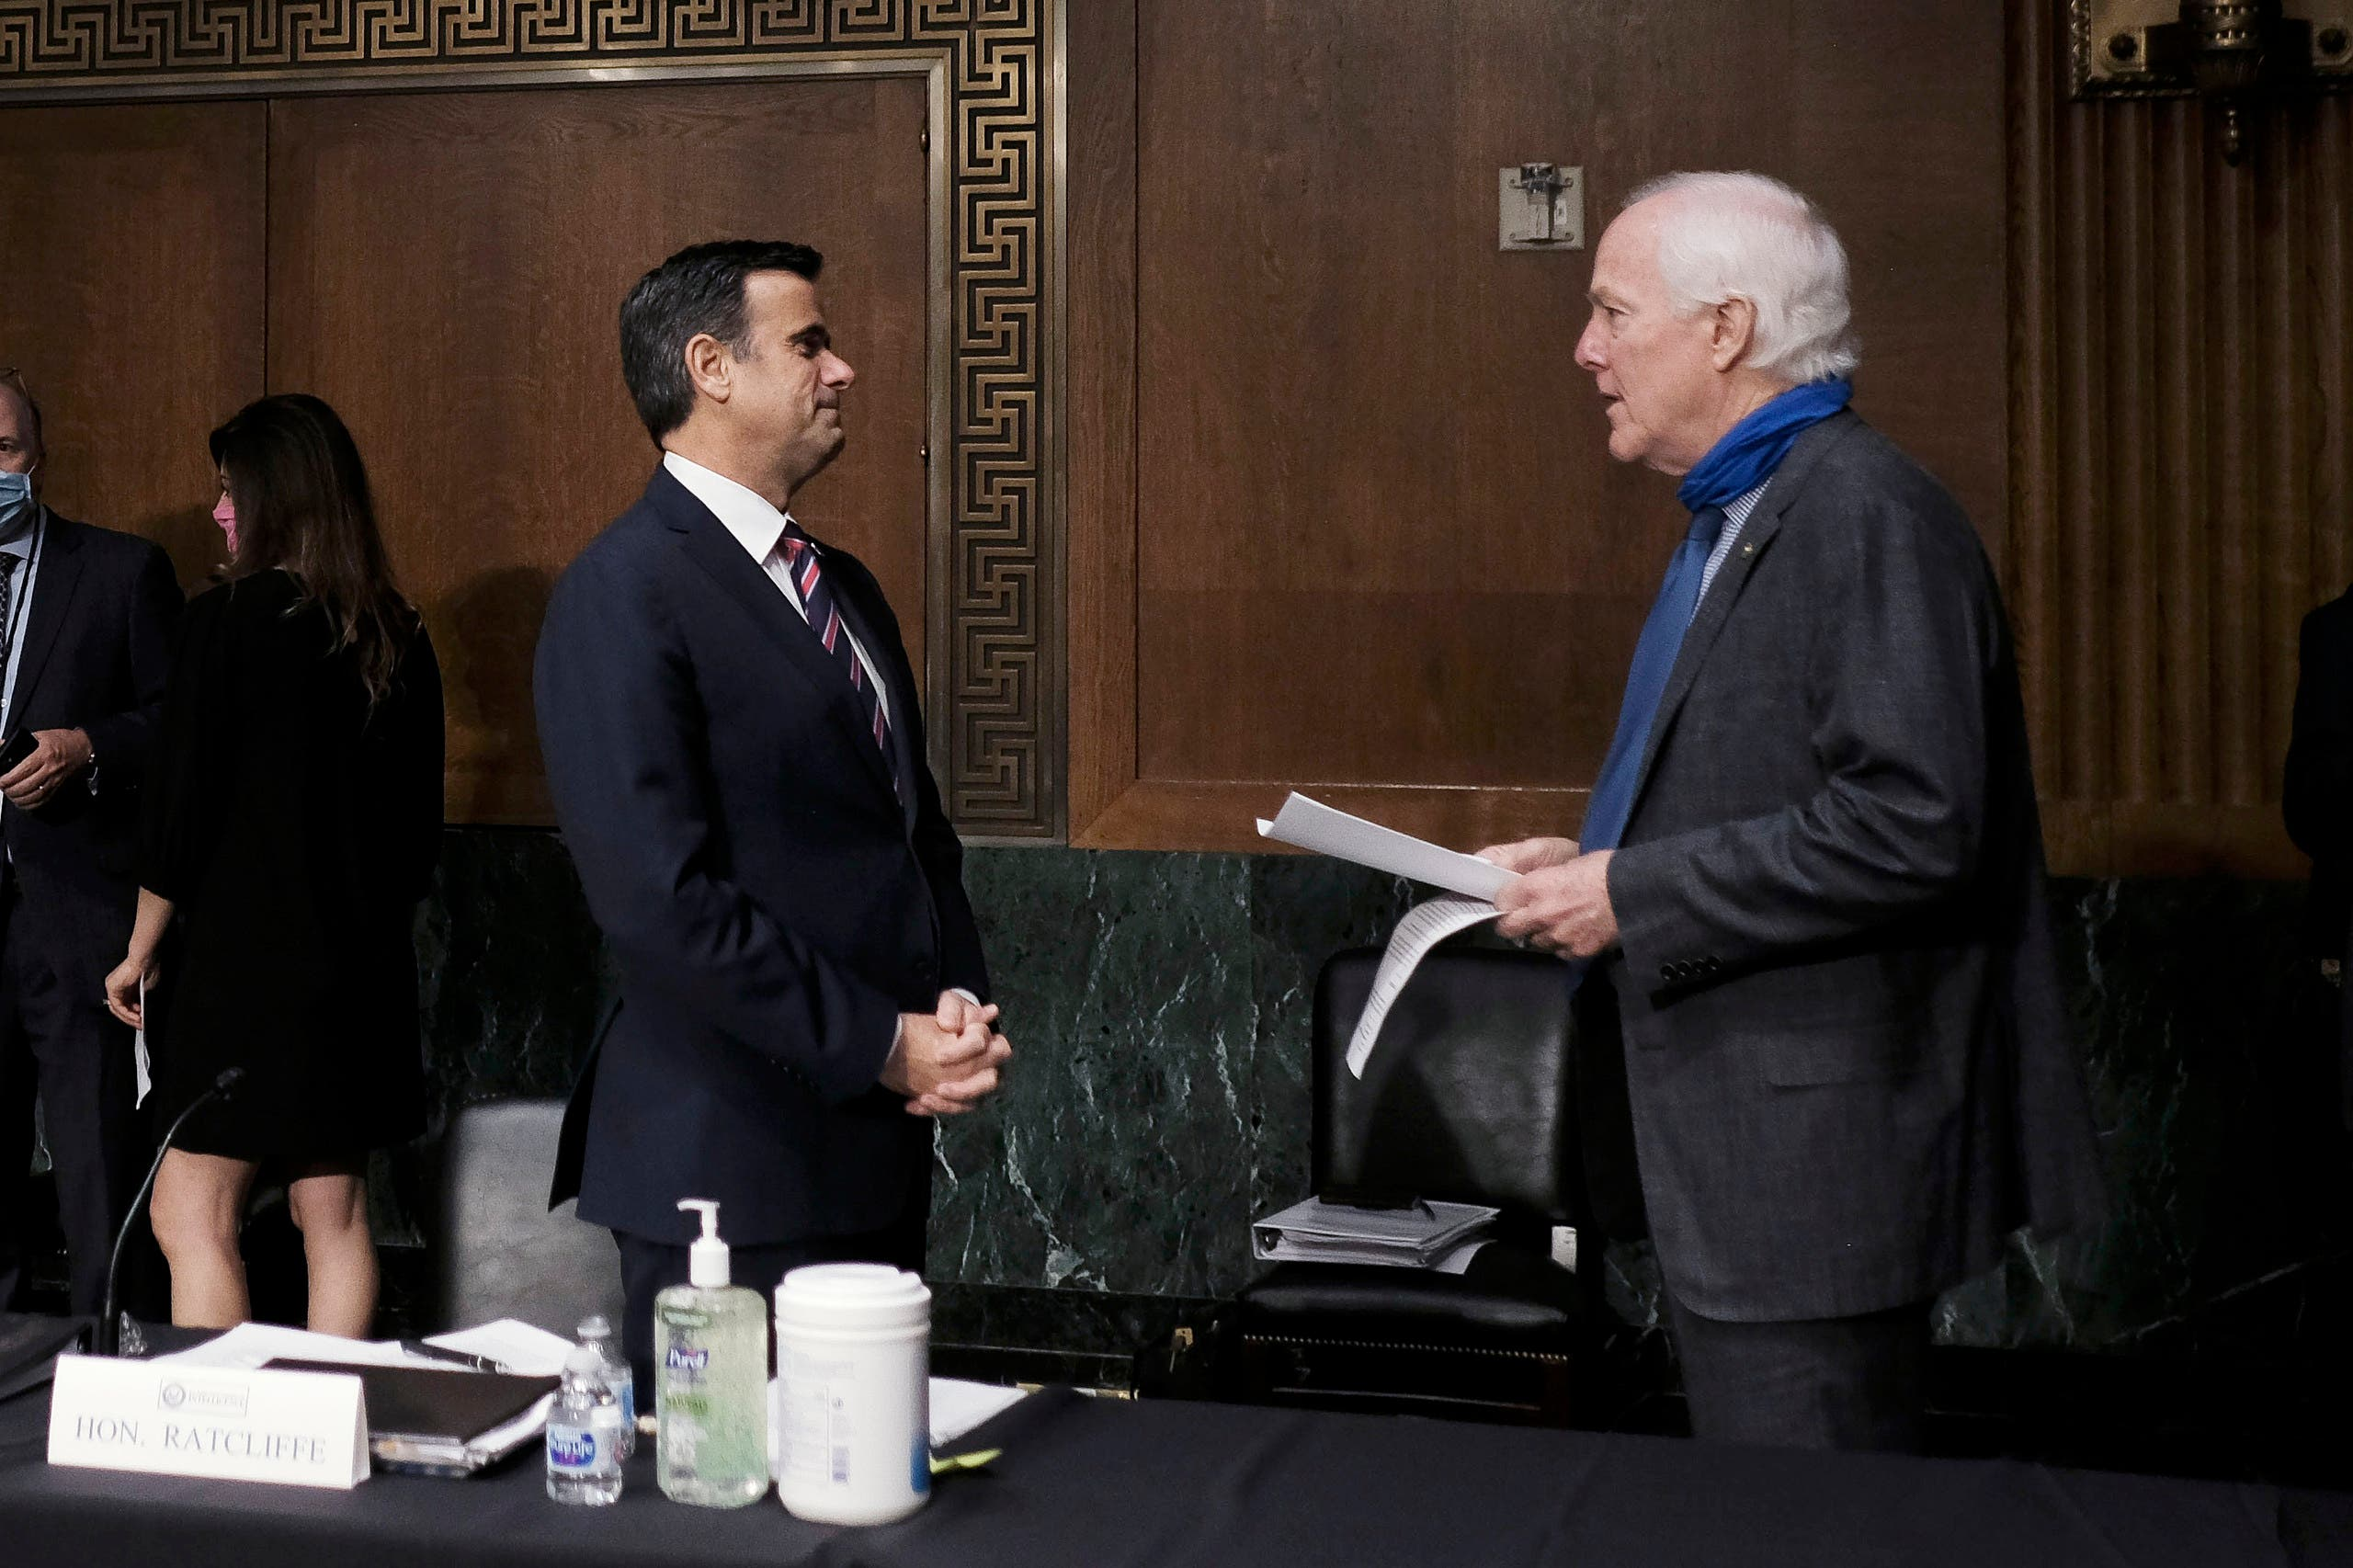 Donald Trump's nominee to lead US intelligence John Ratcliff talks with Senator John Cornyn, at the top of a Senate Intelligence Committee nomination hearing on Capitol Hill in Washington, on May 5, 2020. (AP)